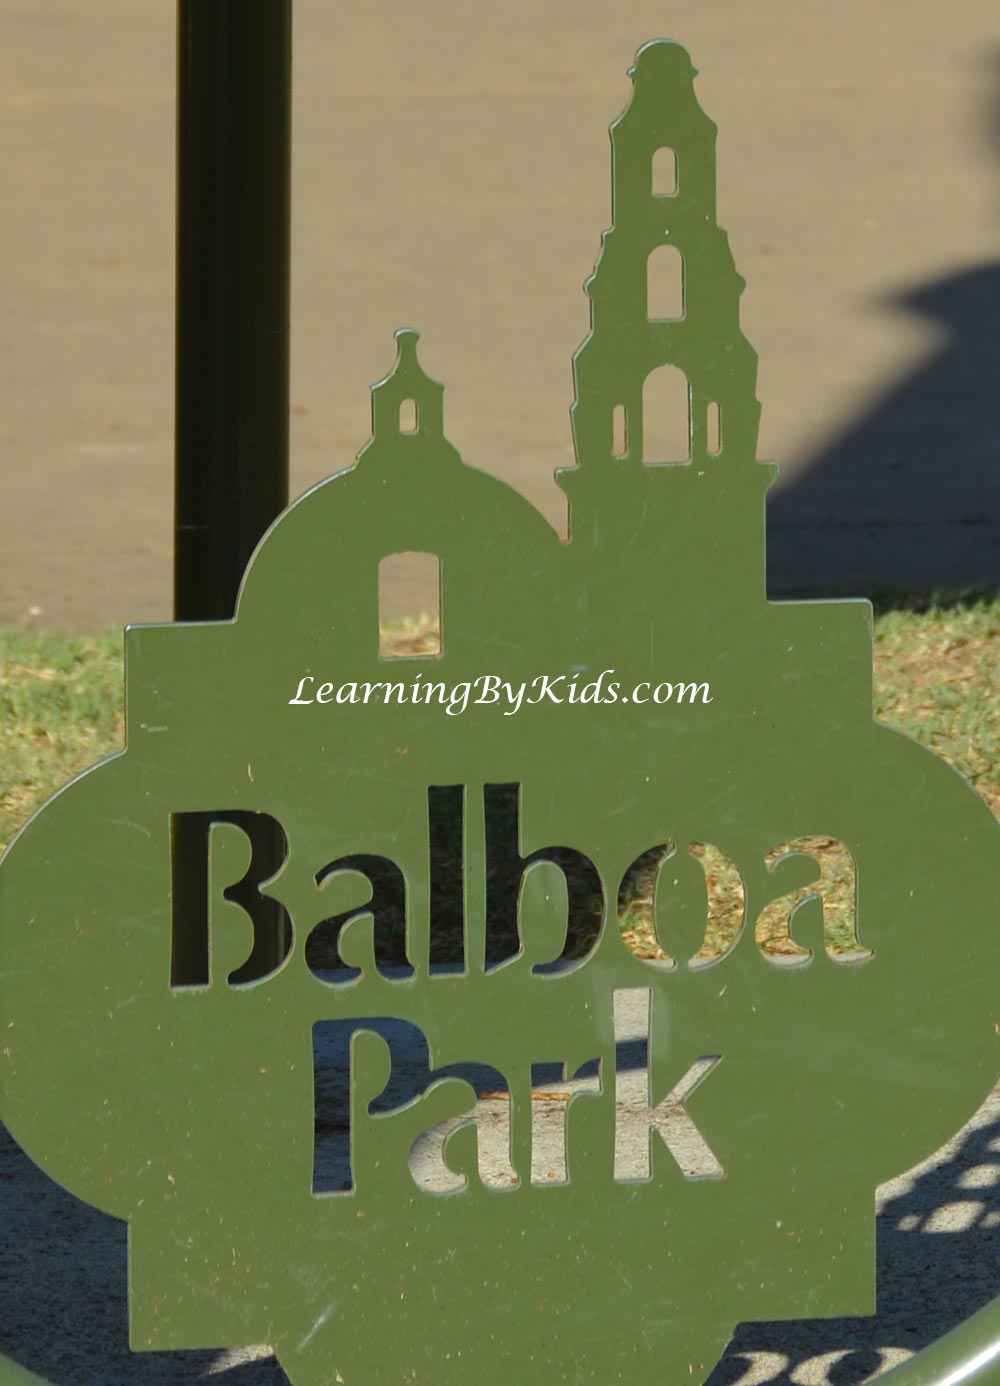 BalboaPark---LearningByKids